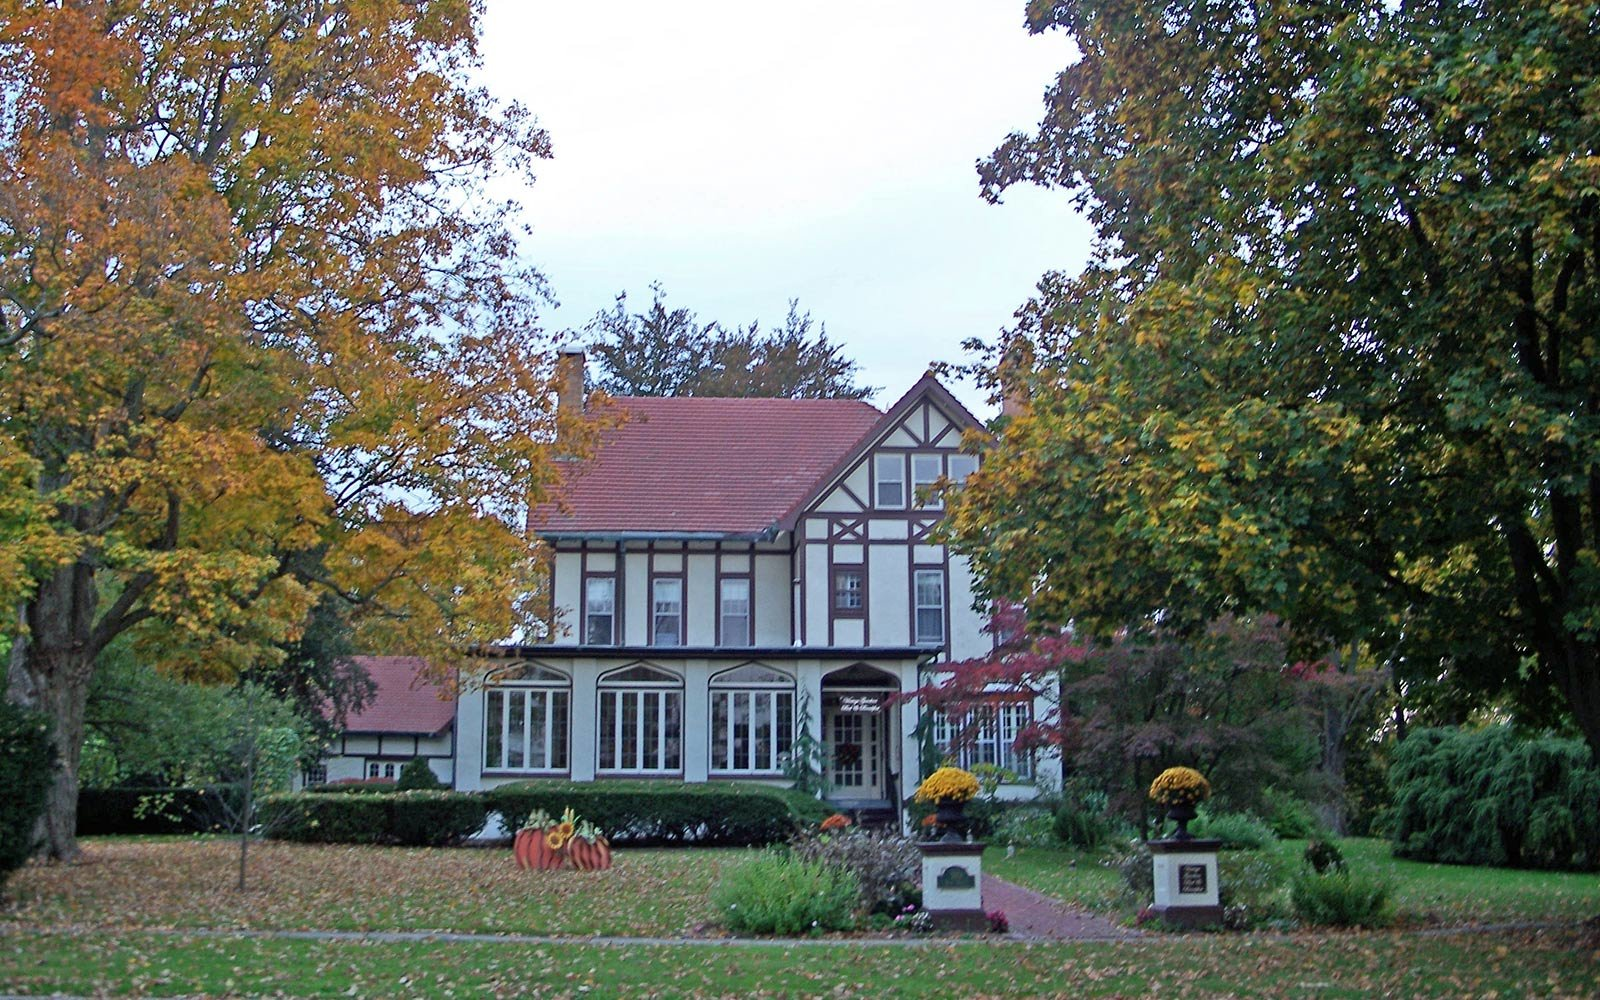 Vintage Gardens Bed & Breakfast, Newark, New York